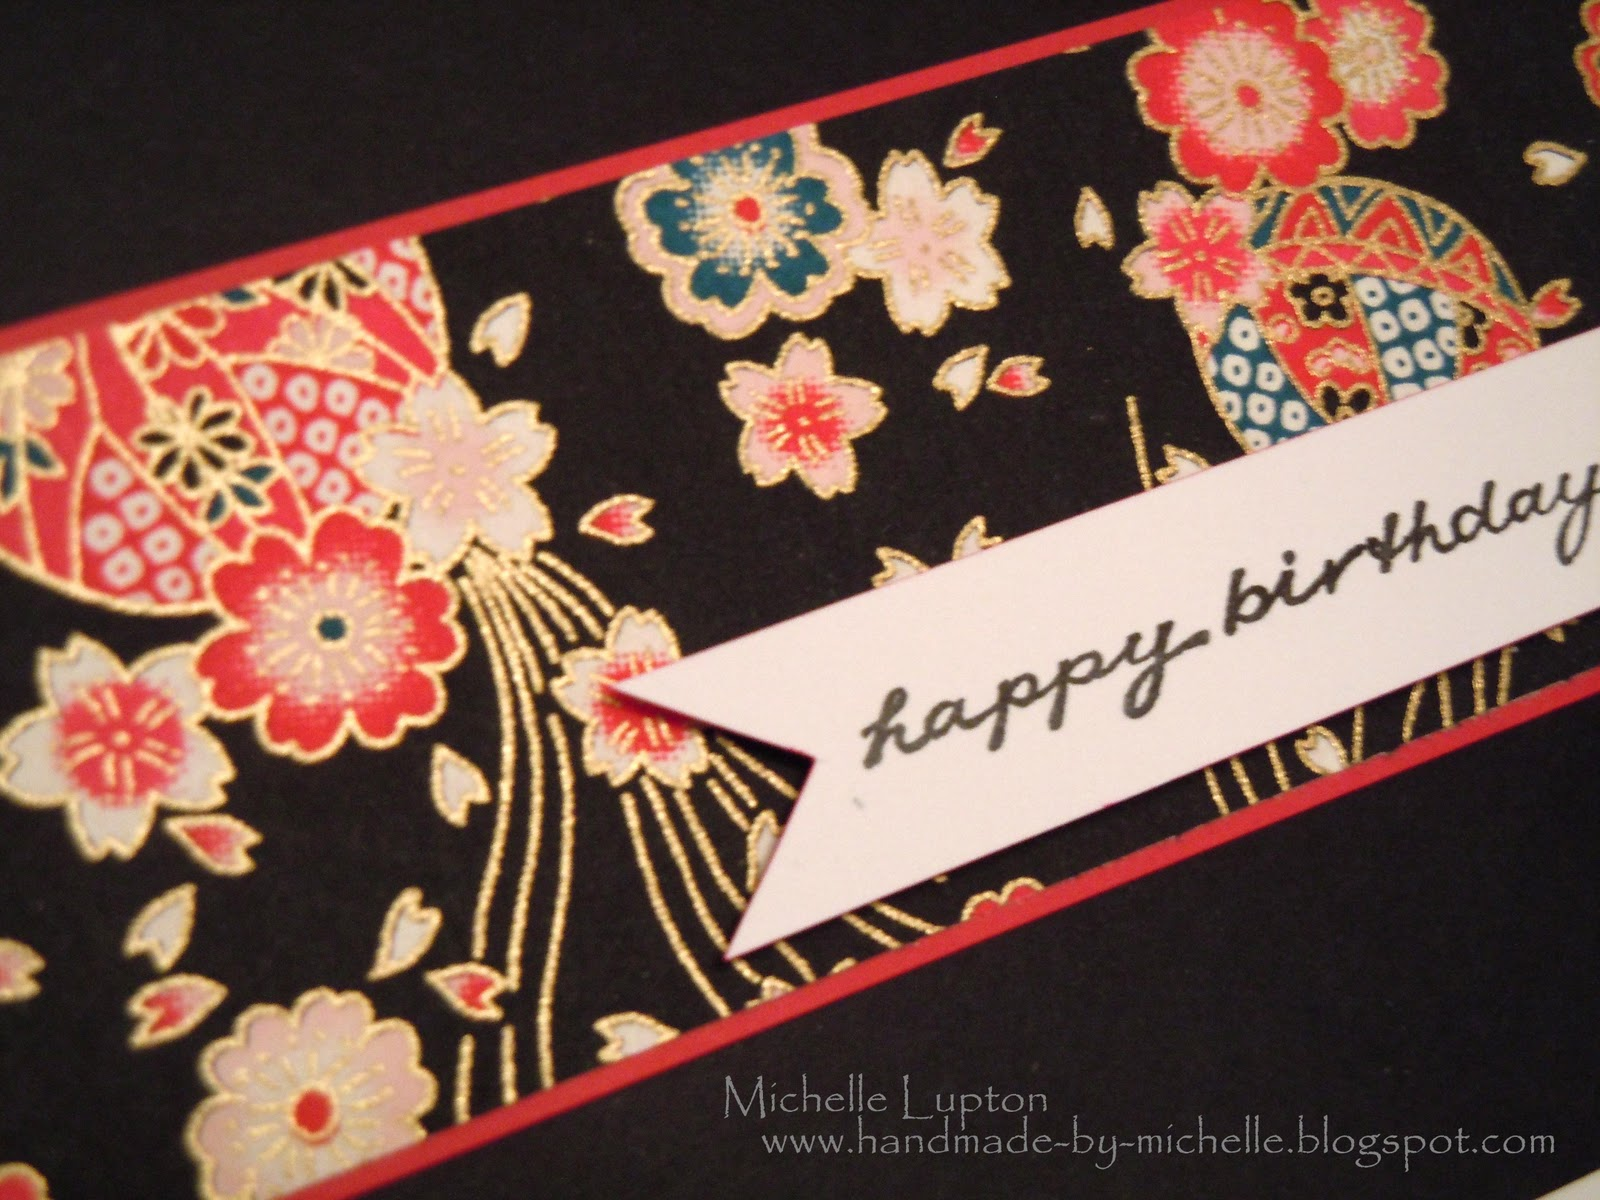 Handmade by Michelle Happy birthday Kate – Japanese Birthday Greetings